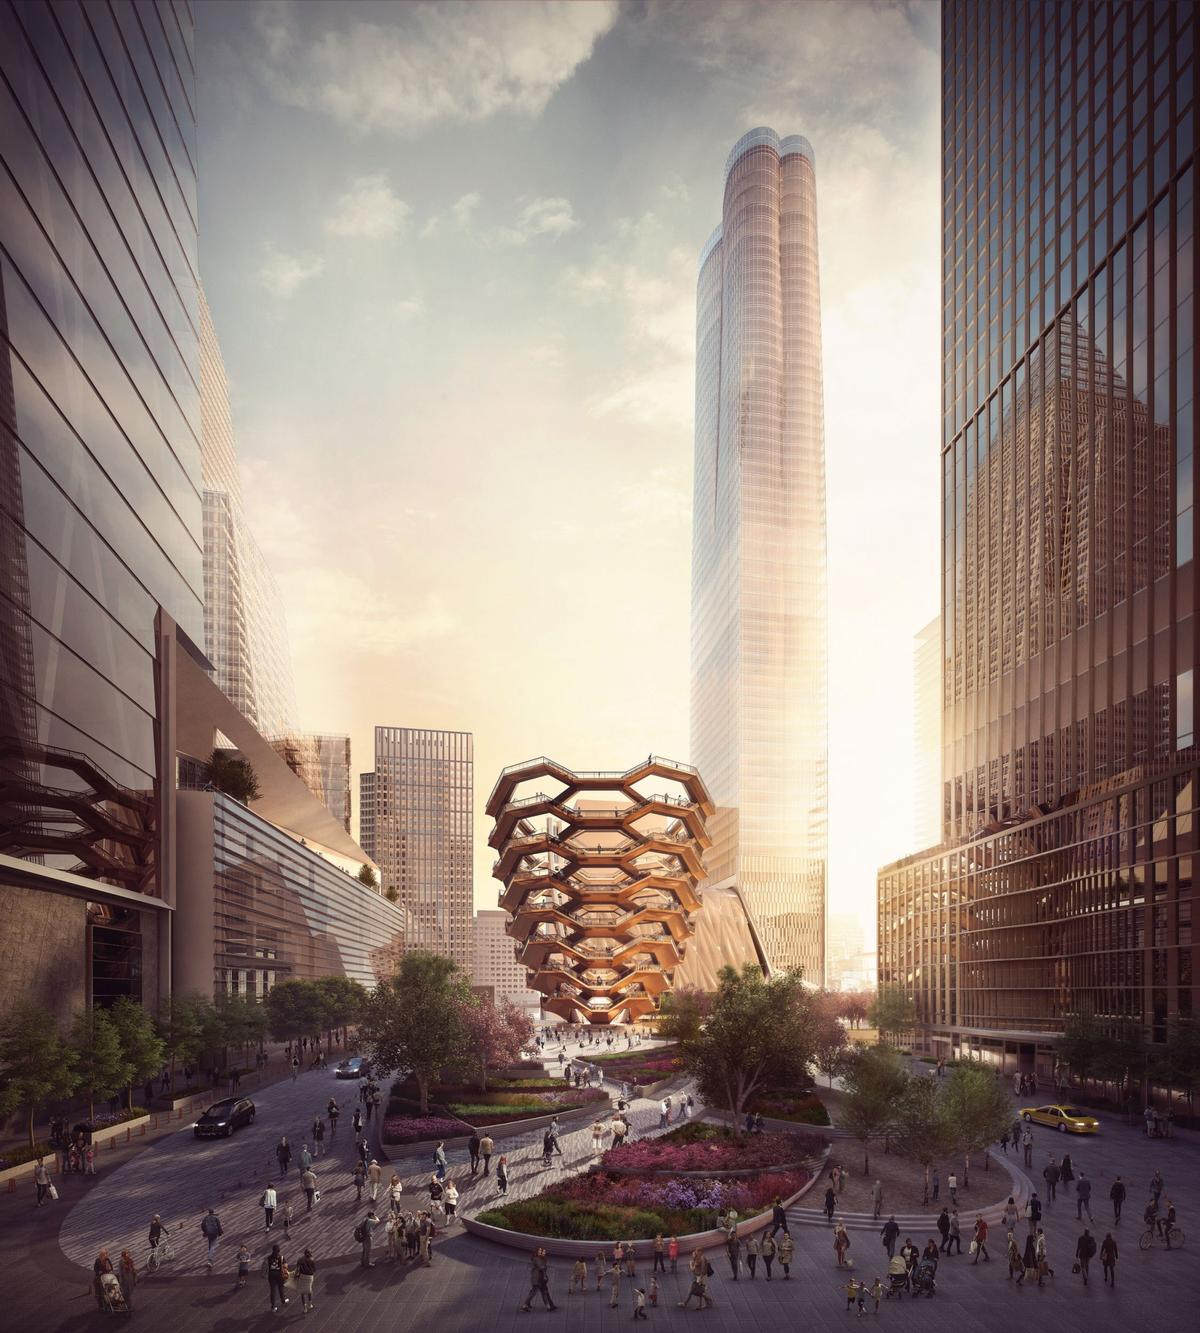 Vessel will be located in Hudson Yards' Public Square and Gardens, designed by Nelson Byrd Woltz Landscape Architects / Forbes Massie